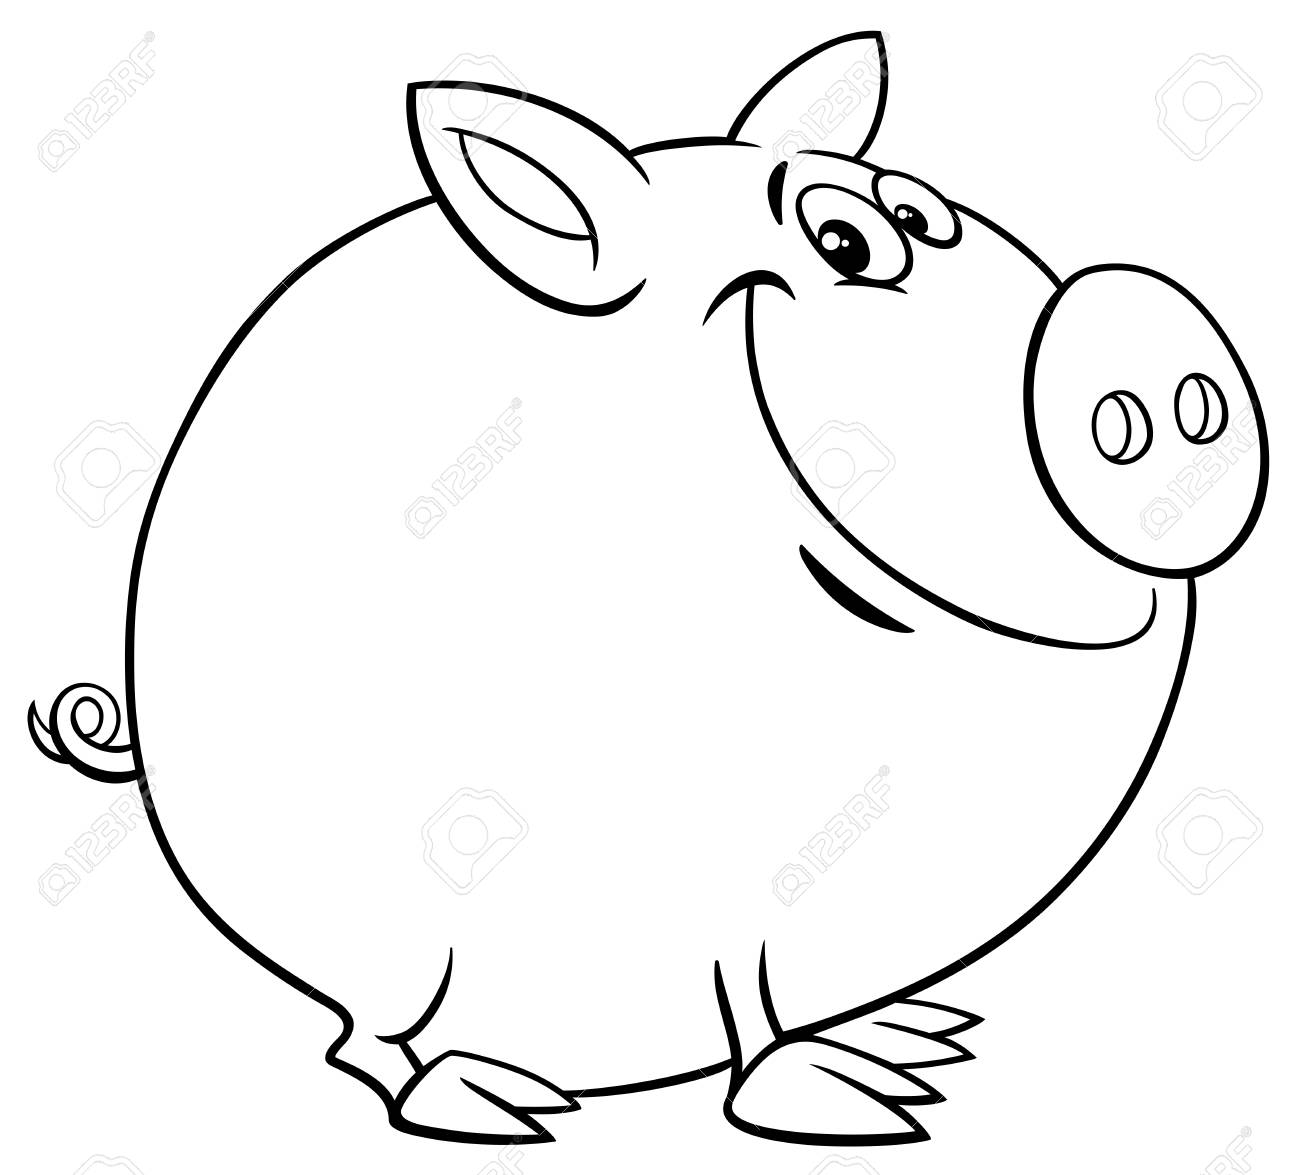 Black And White Cartoon Illustration Of Funny Pig Farm Animal Royalty Free Cliparts Vectors And Stock Illustration Image 103587726